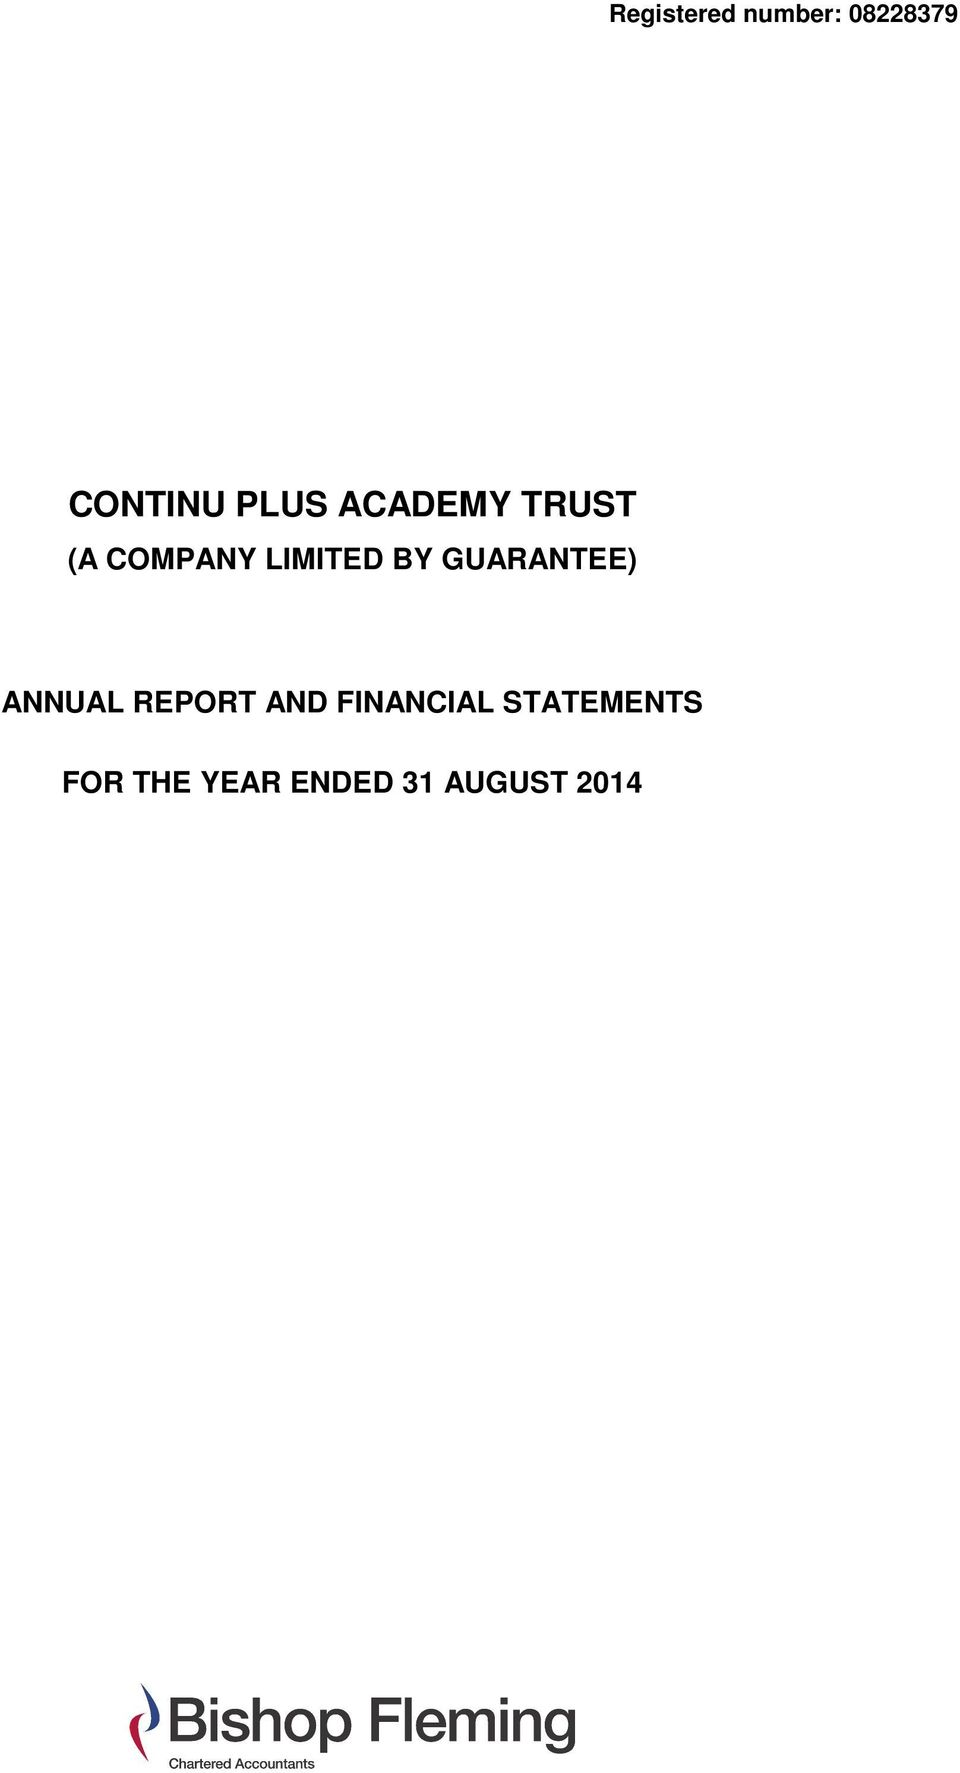 ANNUAL REPORT AND FINANCIAL